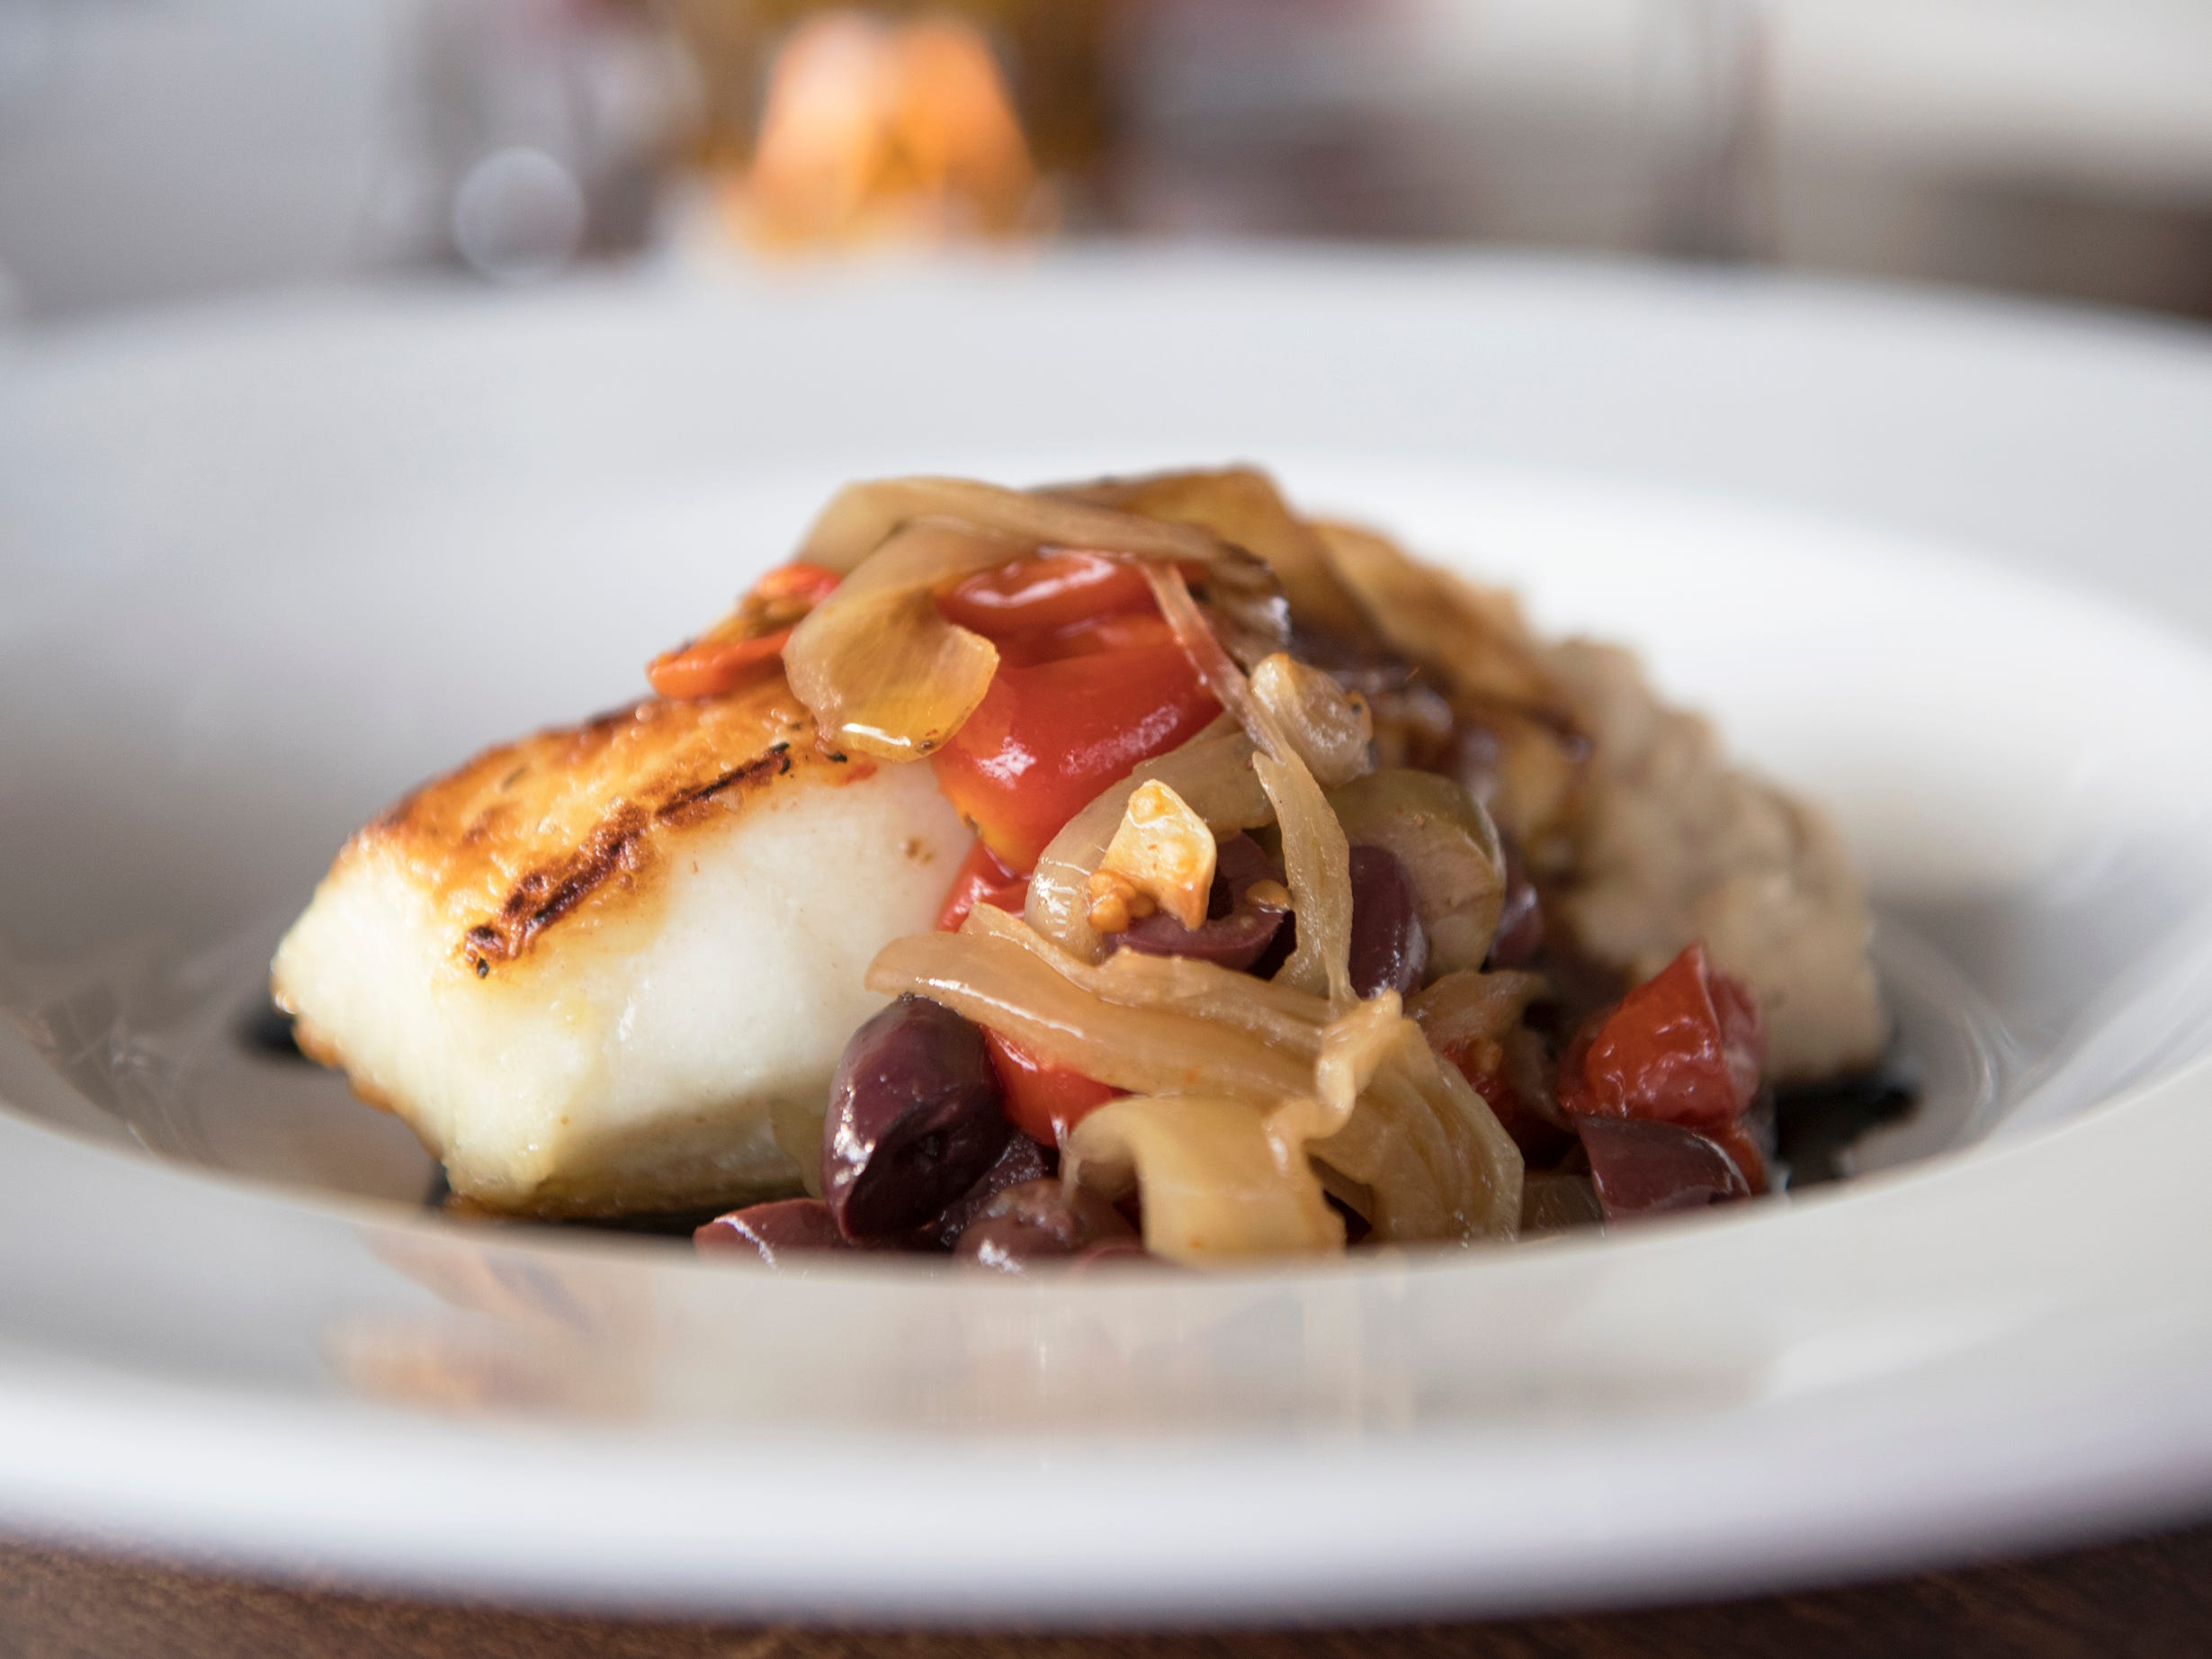 Chilean sea bass served over white bean puree, topped with tomato caponata, with balsamic glaze, is an entree option on the SJ Hot Chefs' Spring Restaurant Week menu of L'Oceano Ristorante in Collingswood.